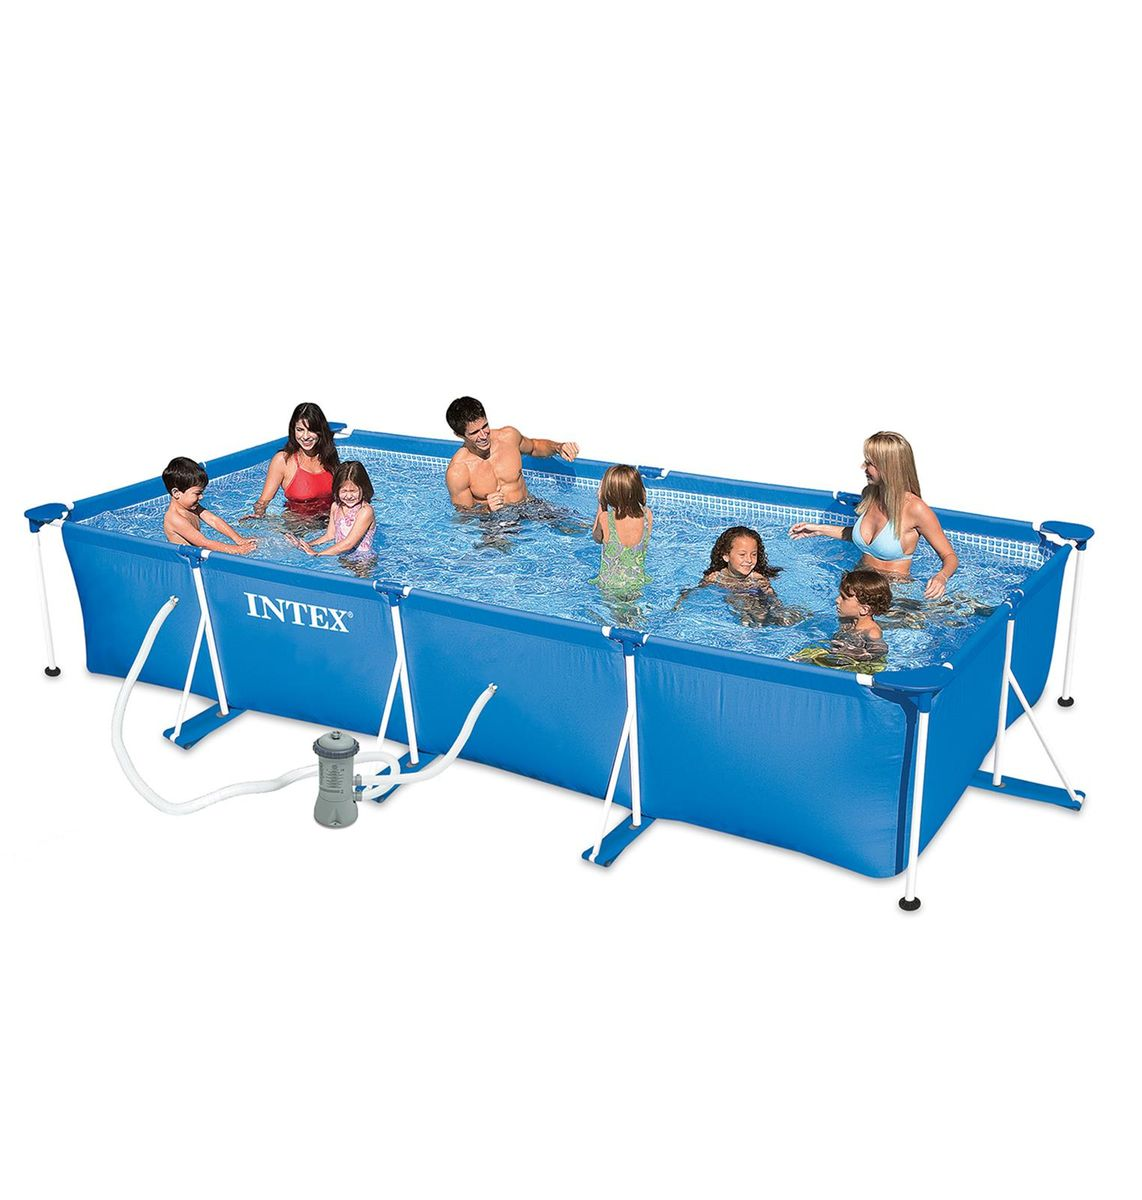 PISCINA INTEX METAL FRAME JUNIOR RECT. 4,50x2,20x0,84